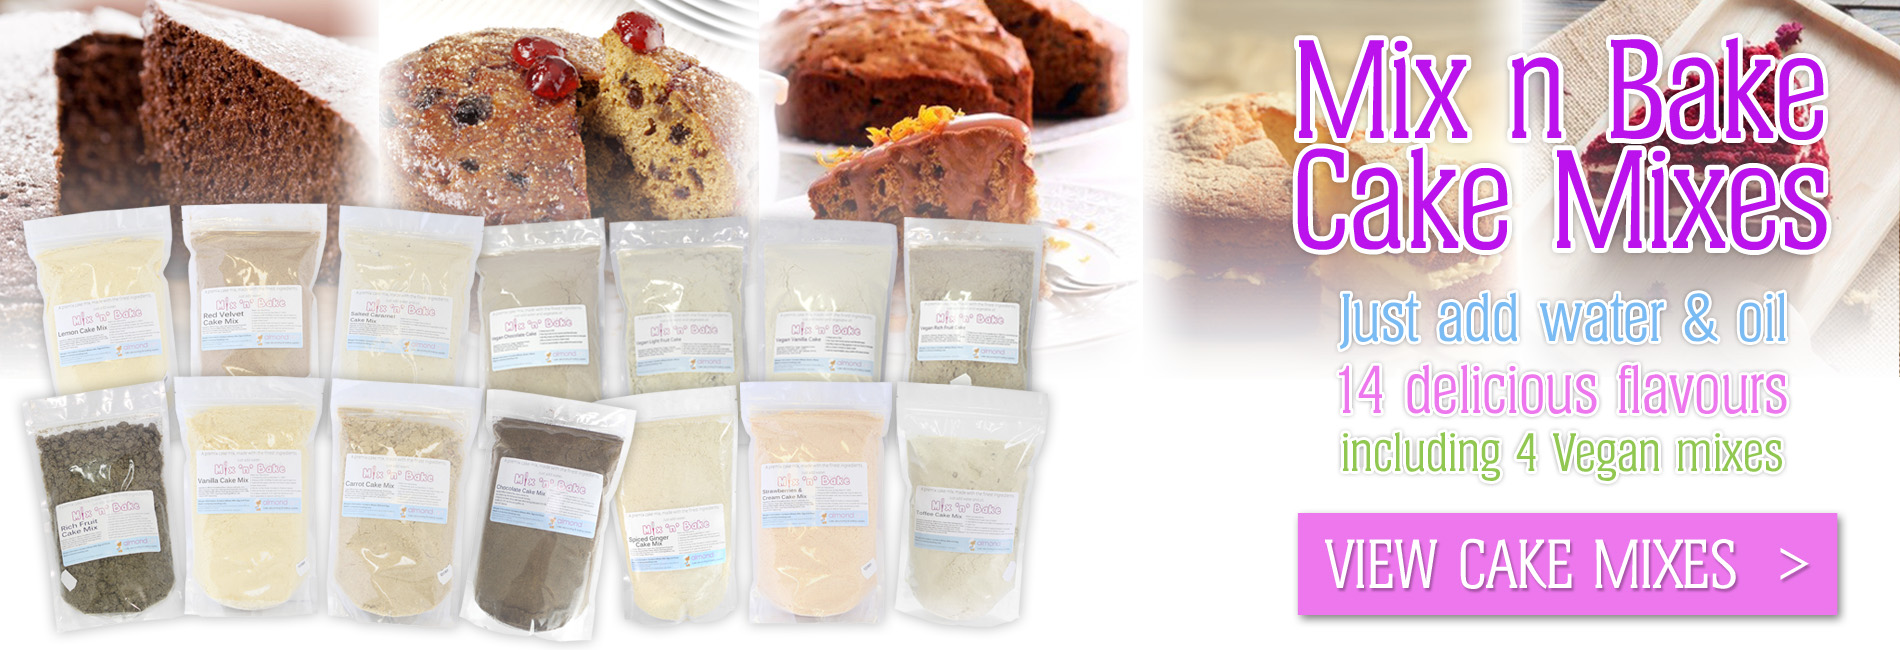 Mix n Bake Cake Mixes - 14 Delicious Flavours